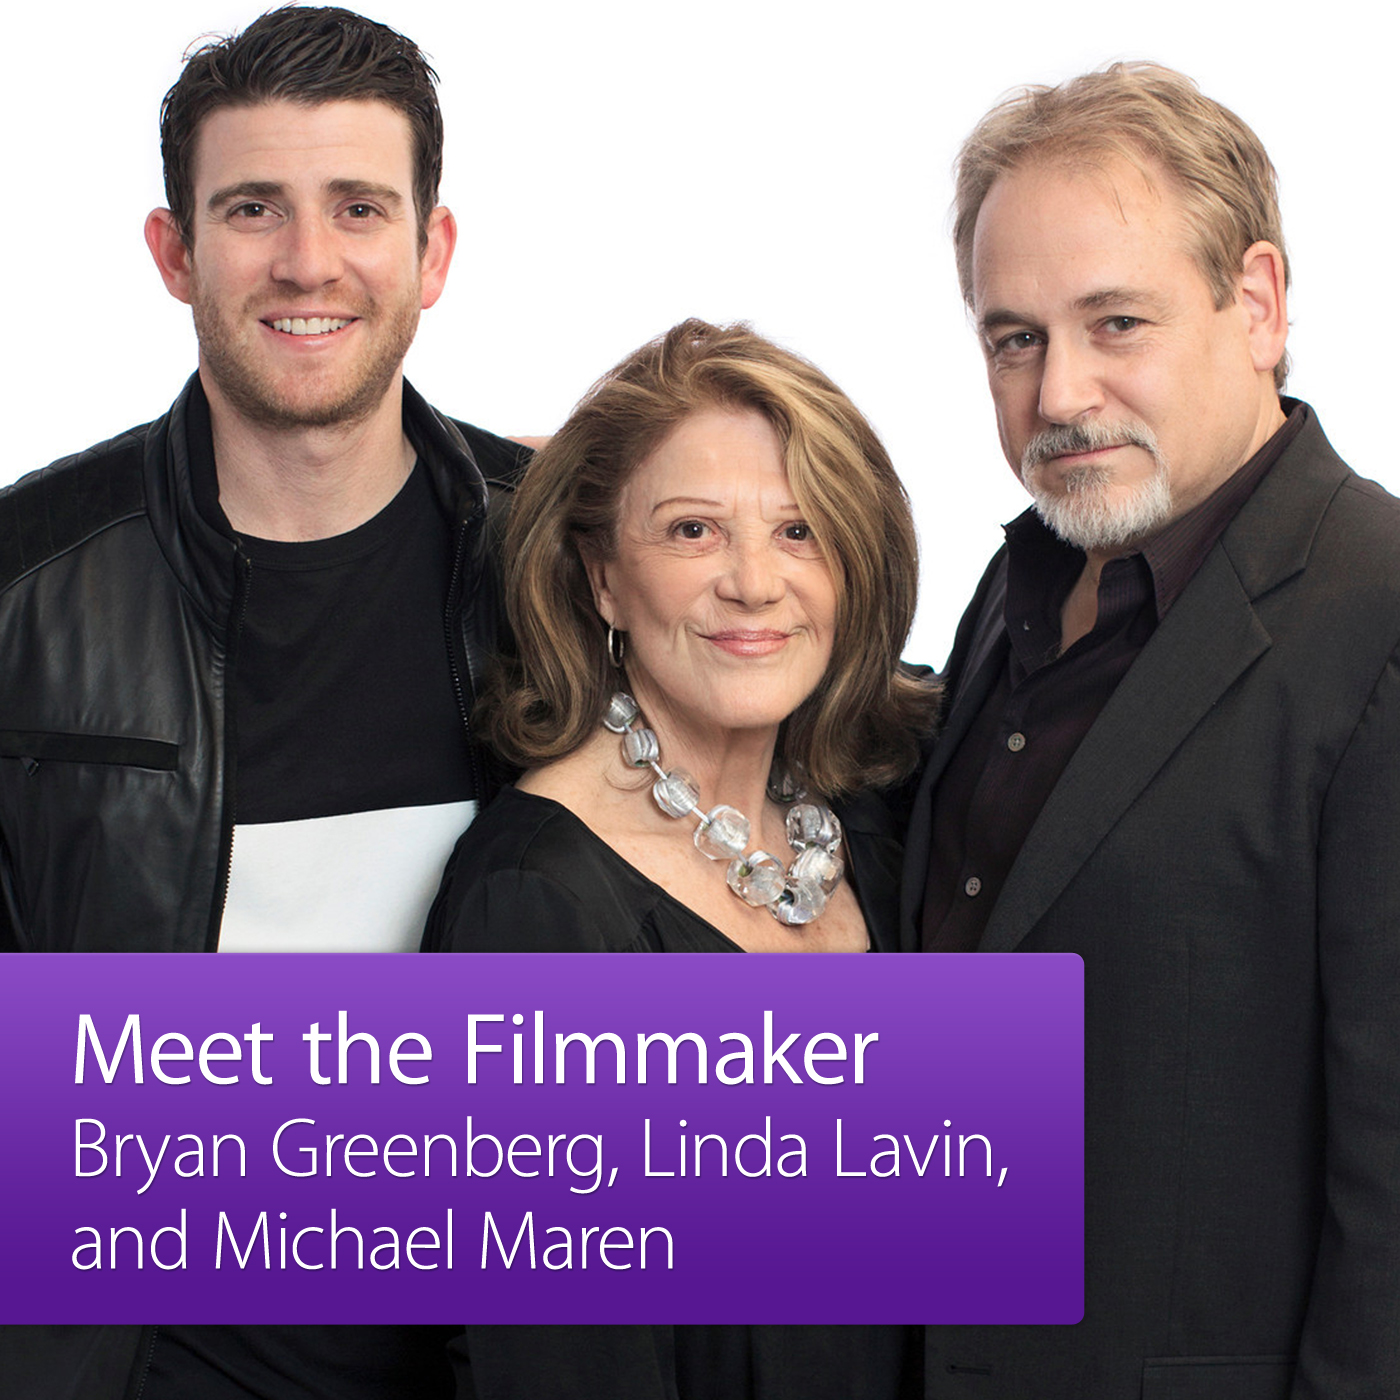 Michael Maren, Bryan Greenberg, and Linda Lavin: Meet the Filmmaker